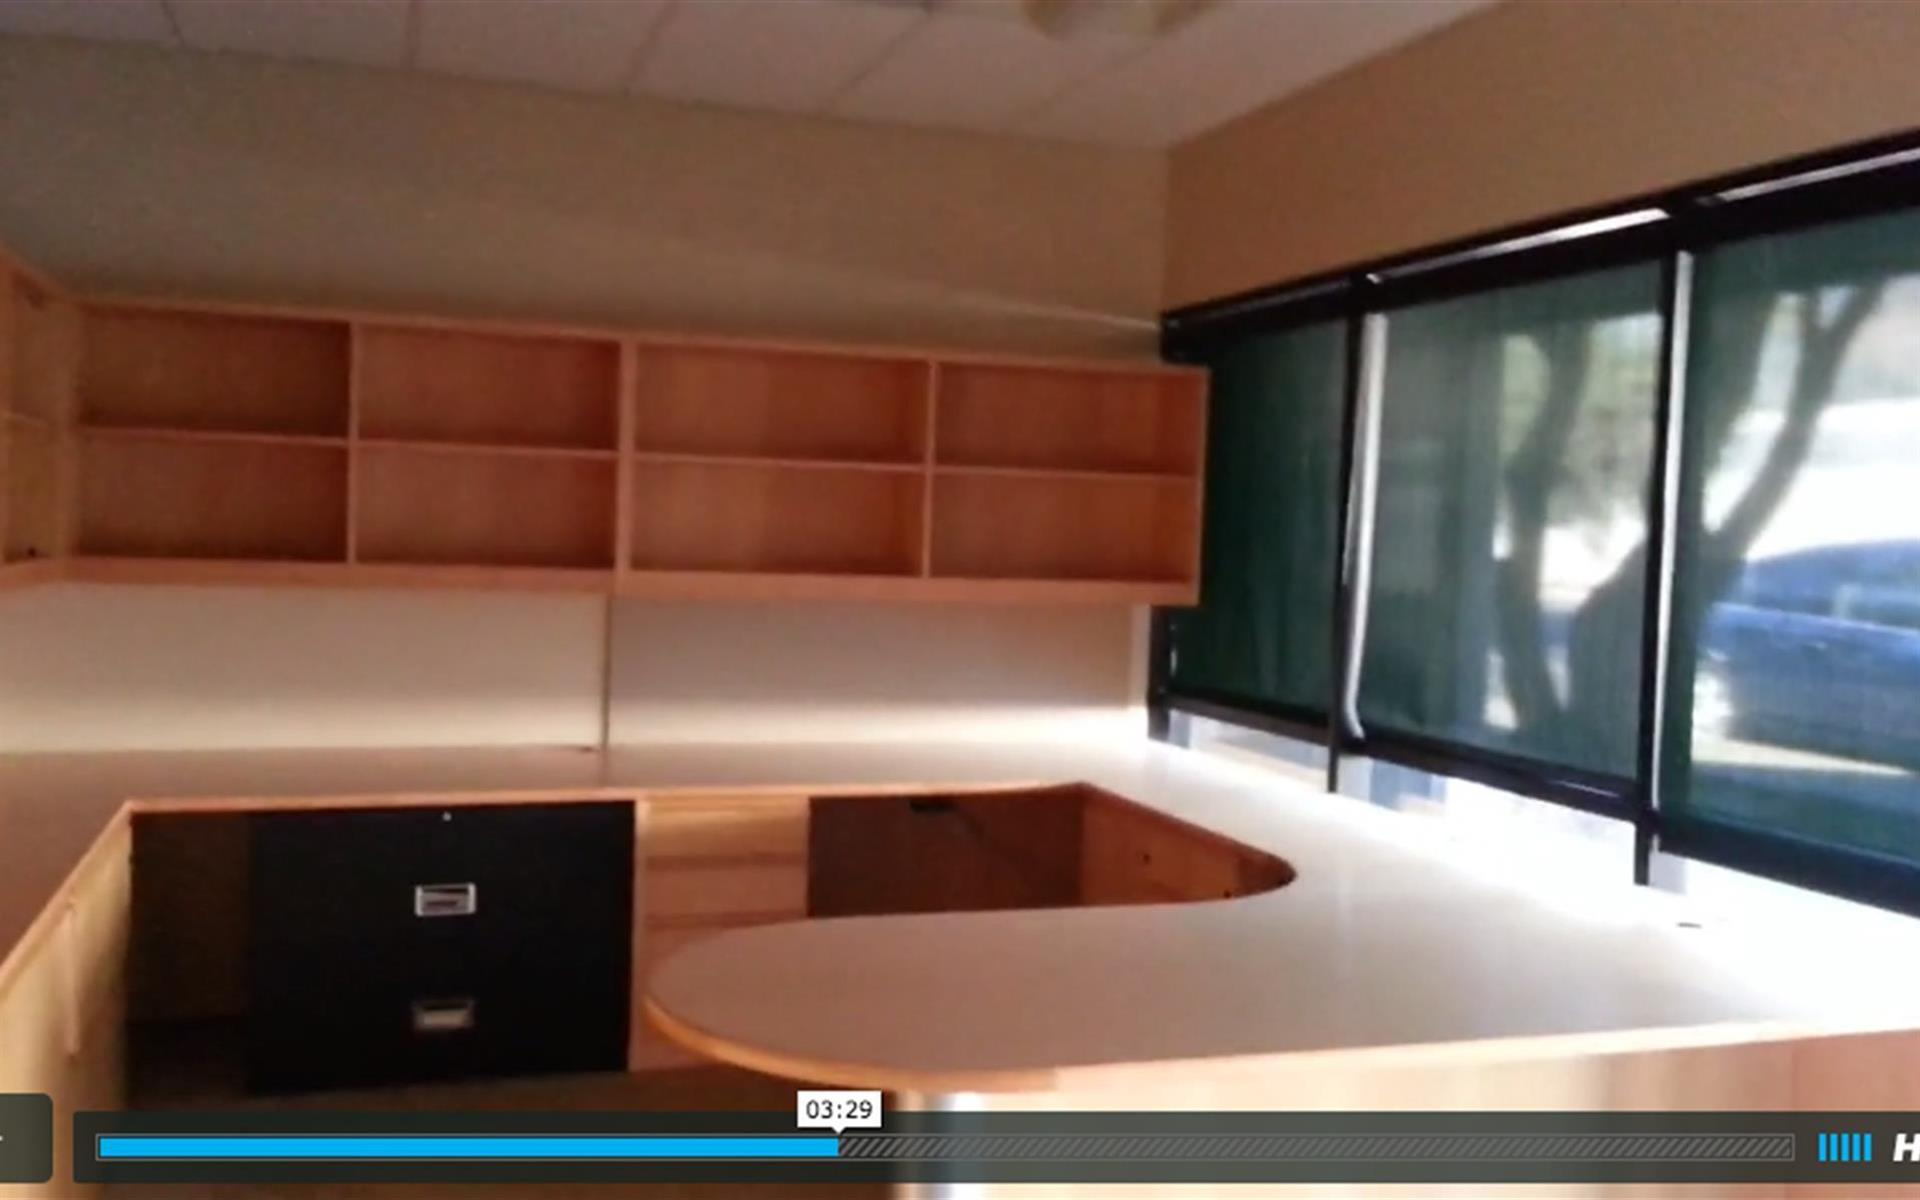 SOS Entertainment - Pacific Beach Private Office